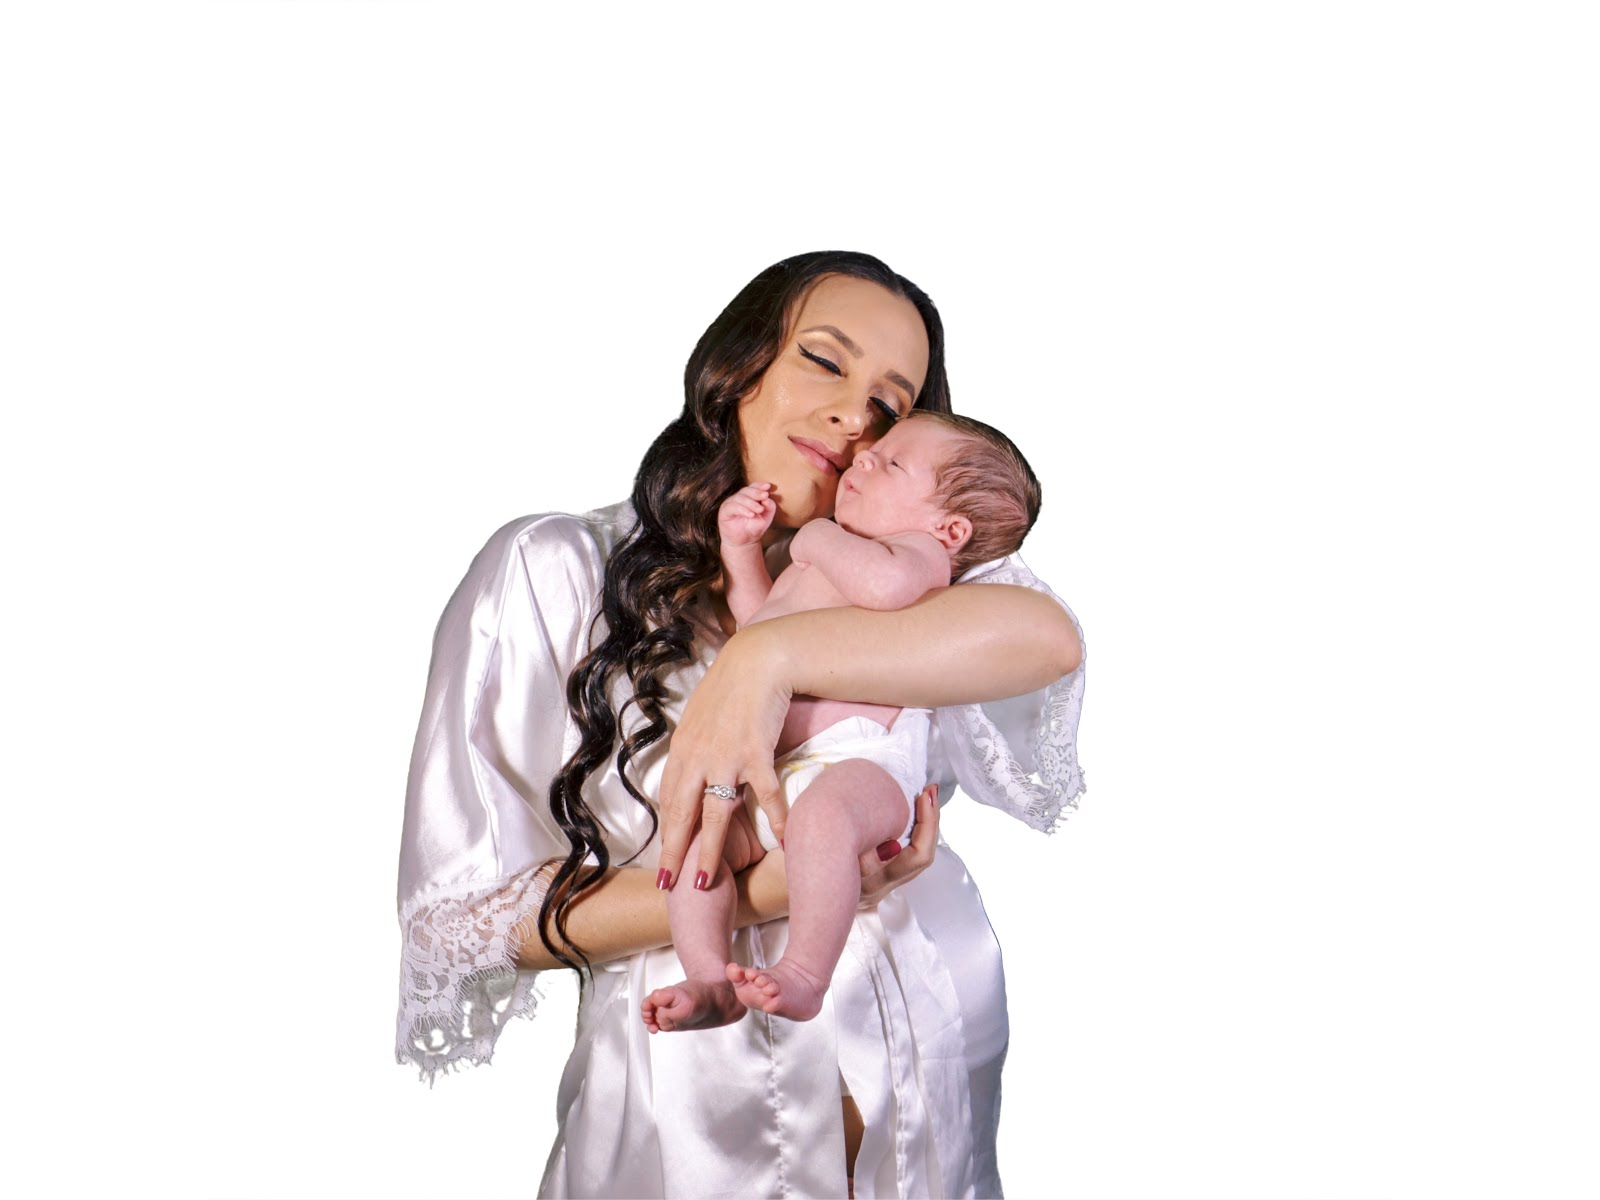 Mom-and-Dad-Newborn-Photoshoot-Vivi-Brizuela